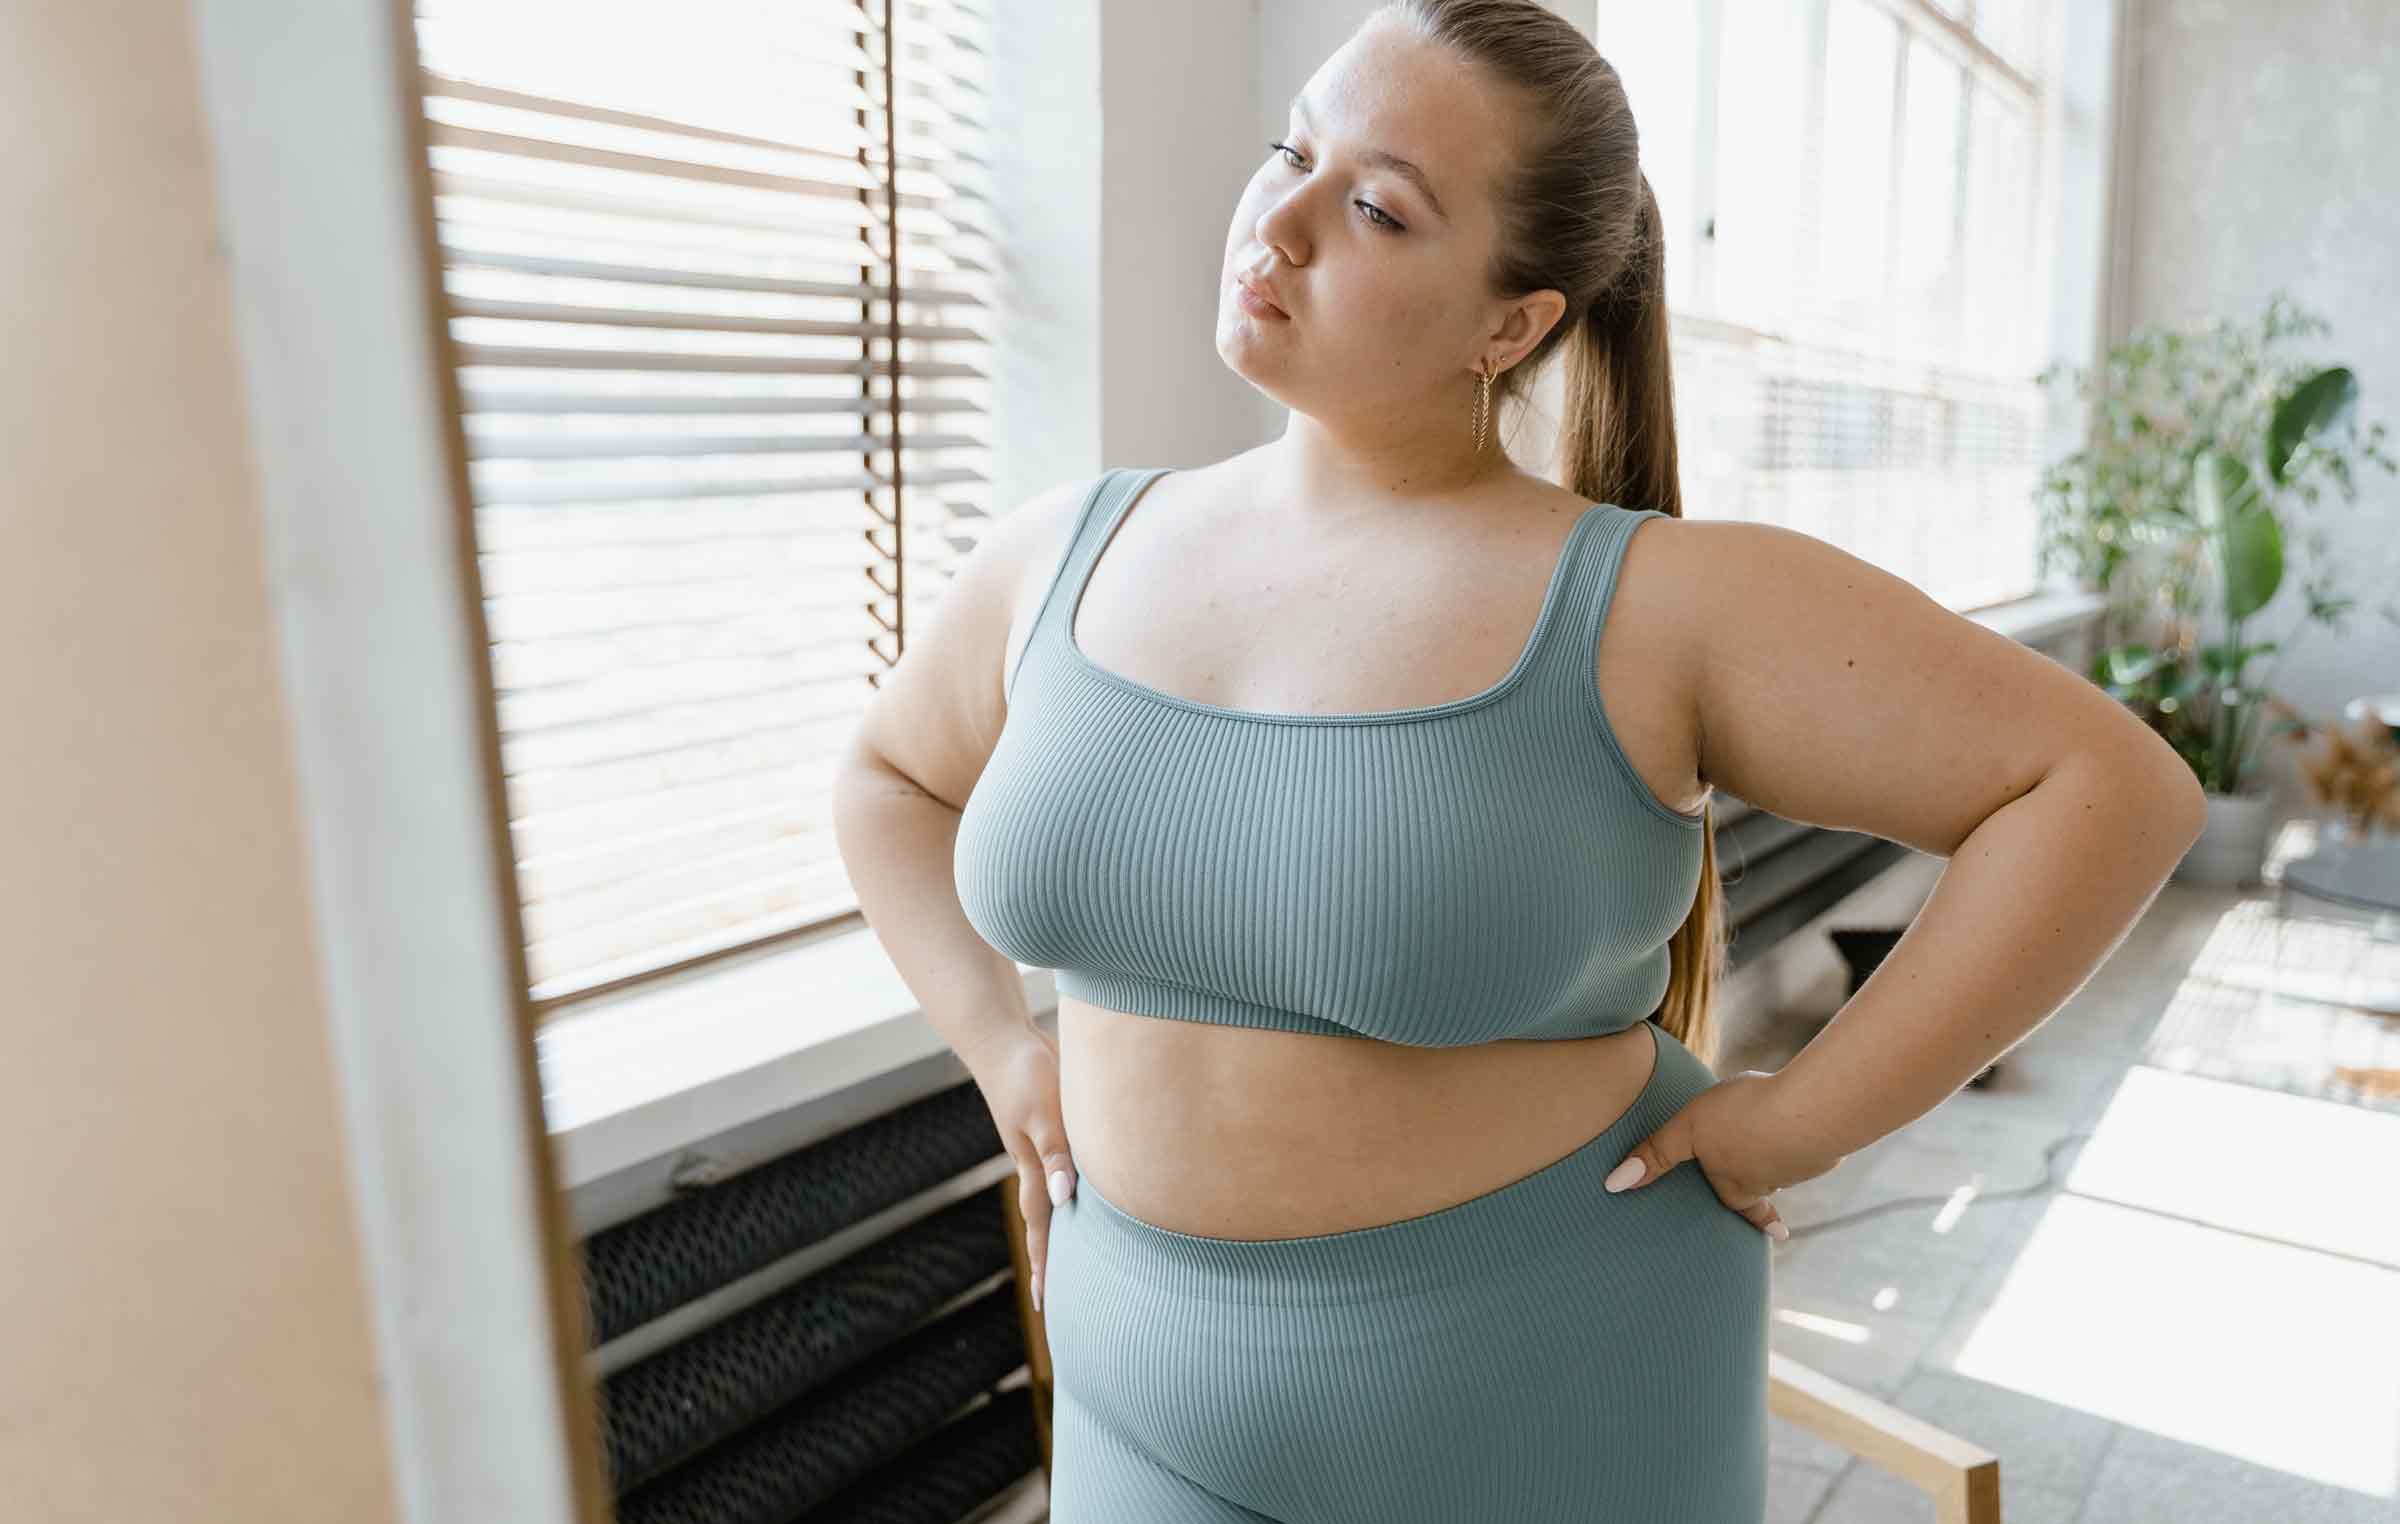 Plus-size women and healthcare.|Dia&Co